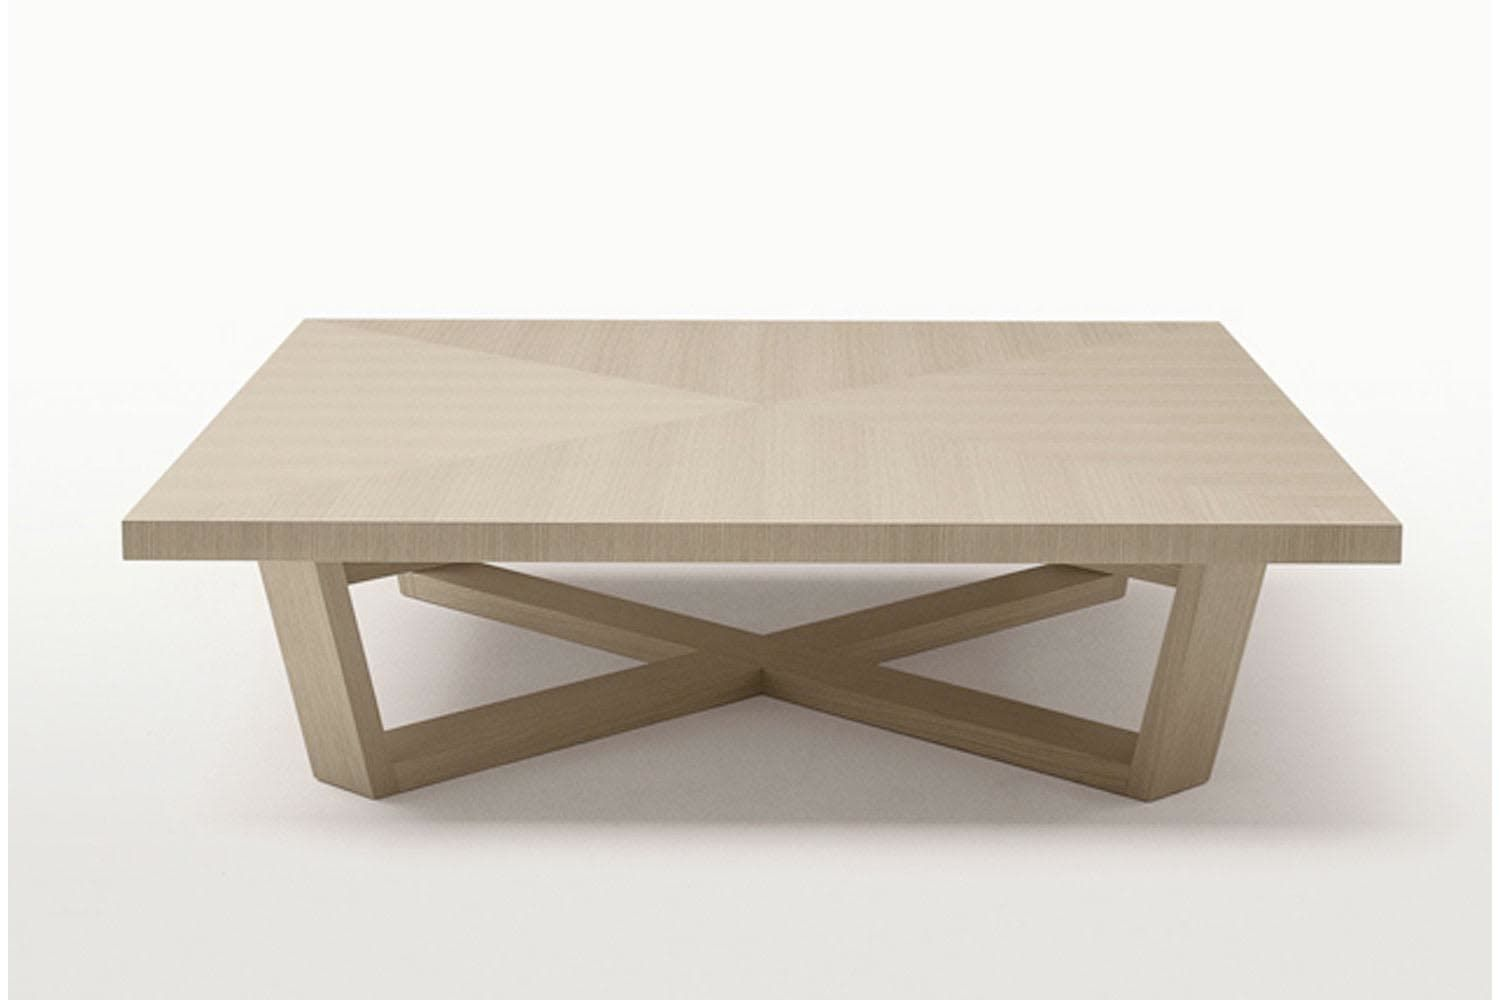 Xilos Small Table By Antonio Citterio For Maxalto Small Tables Table Round Coffee Table [ 1000 x 1500 Pixel ]